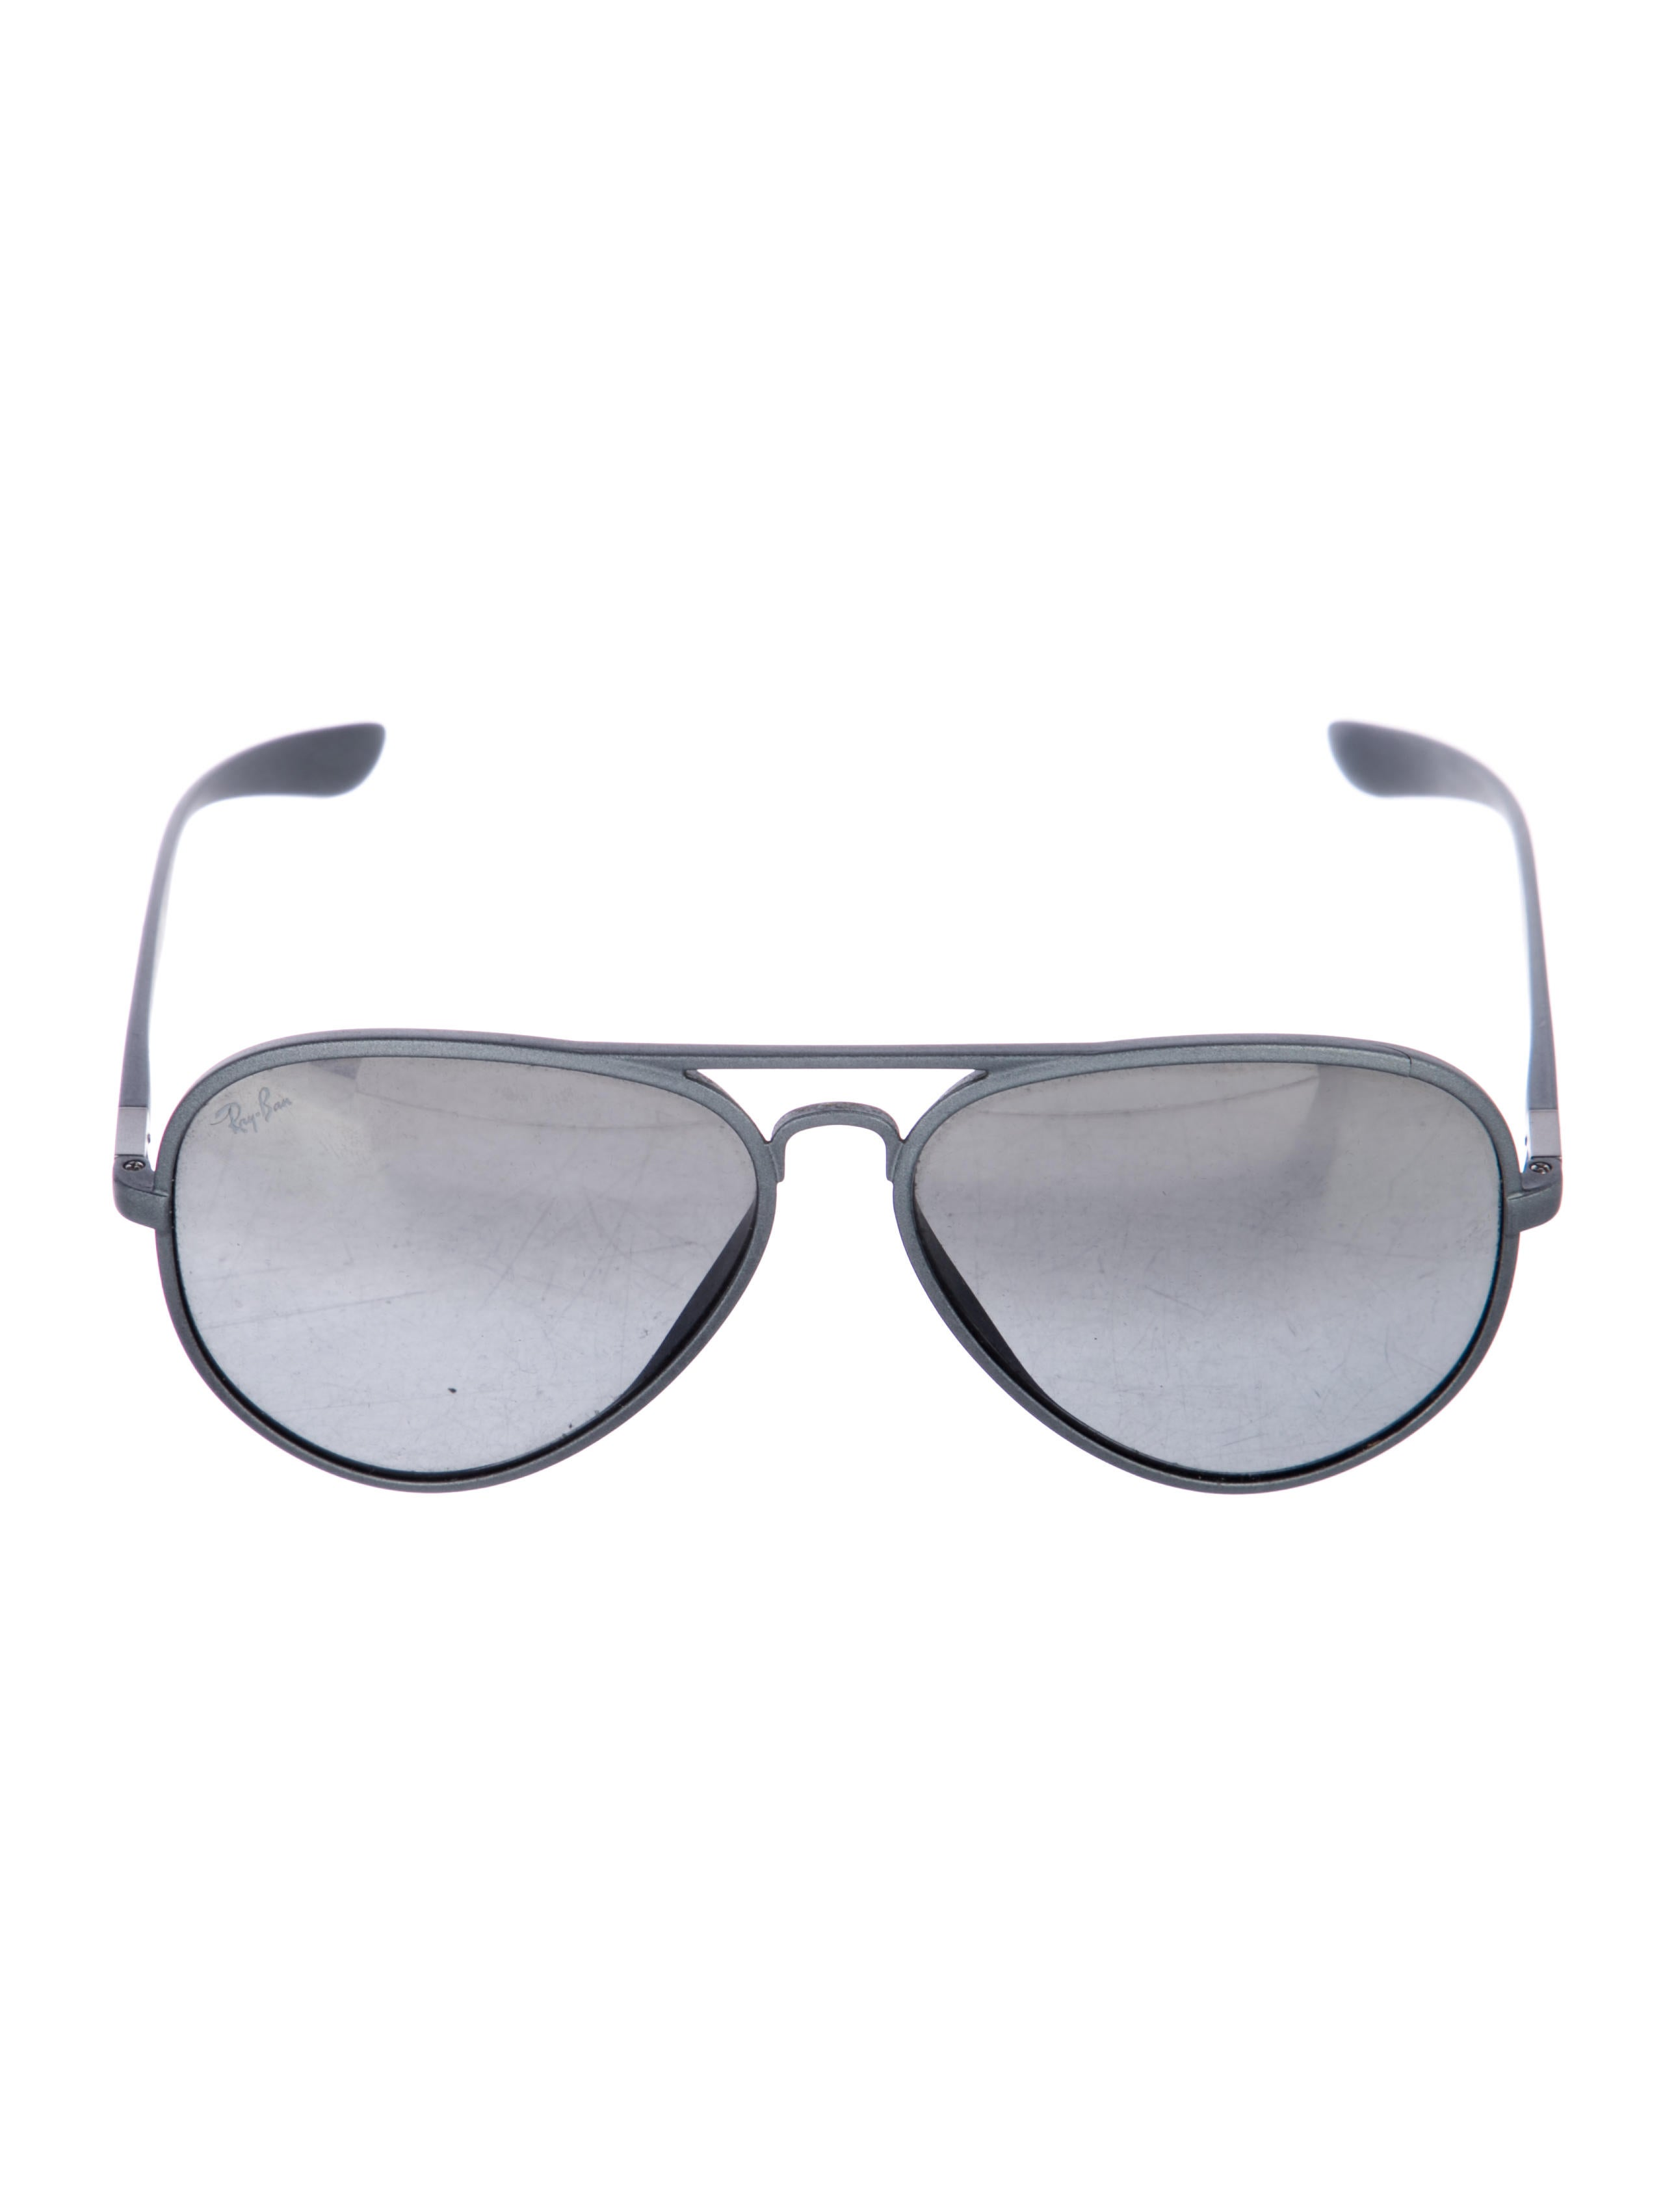 54a45f52d6 Ray-Ban LiteForce Aviator Sunglasses - Accessories - WRX31926